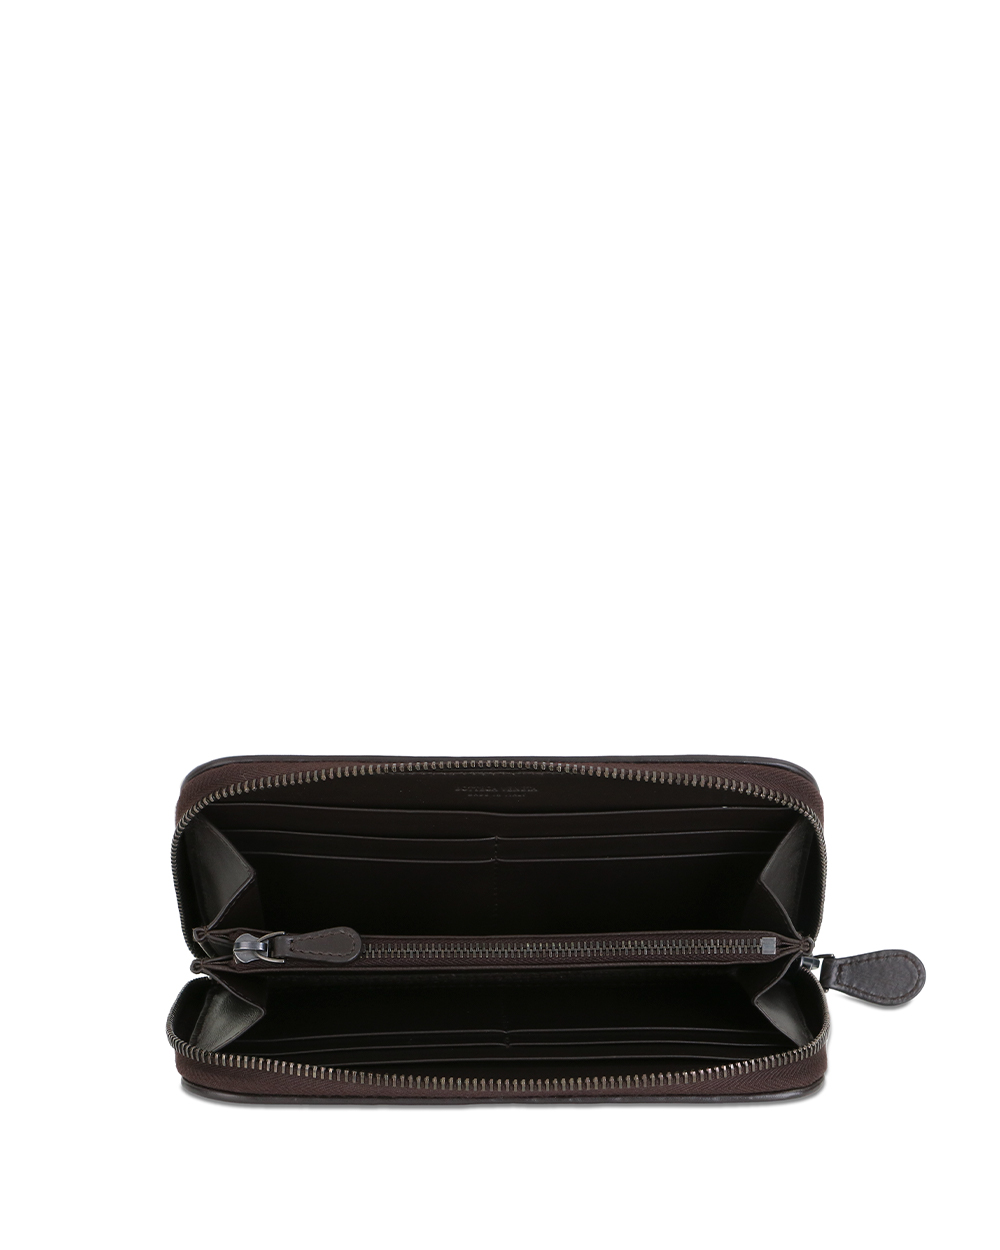 Woven Leather Long Wallet 1